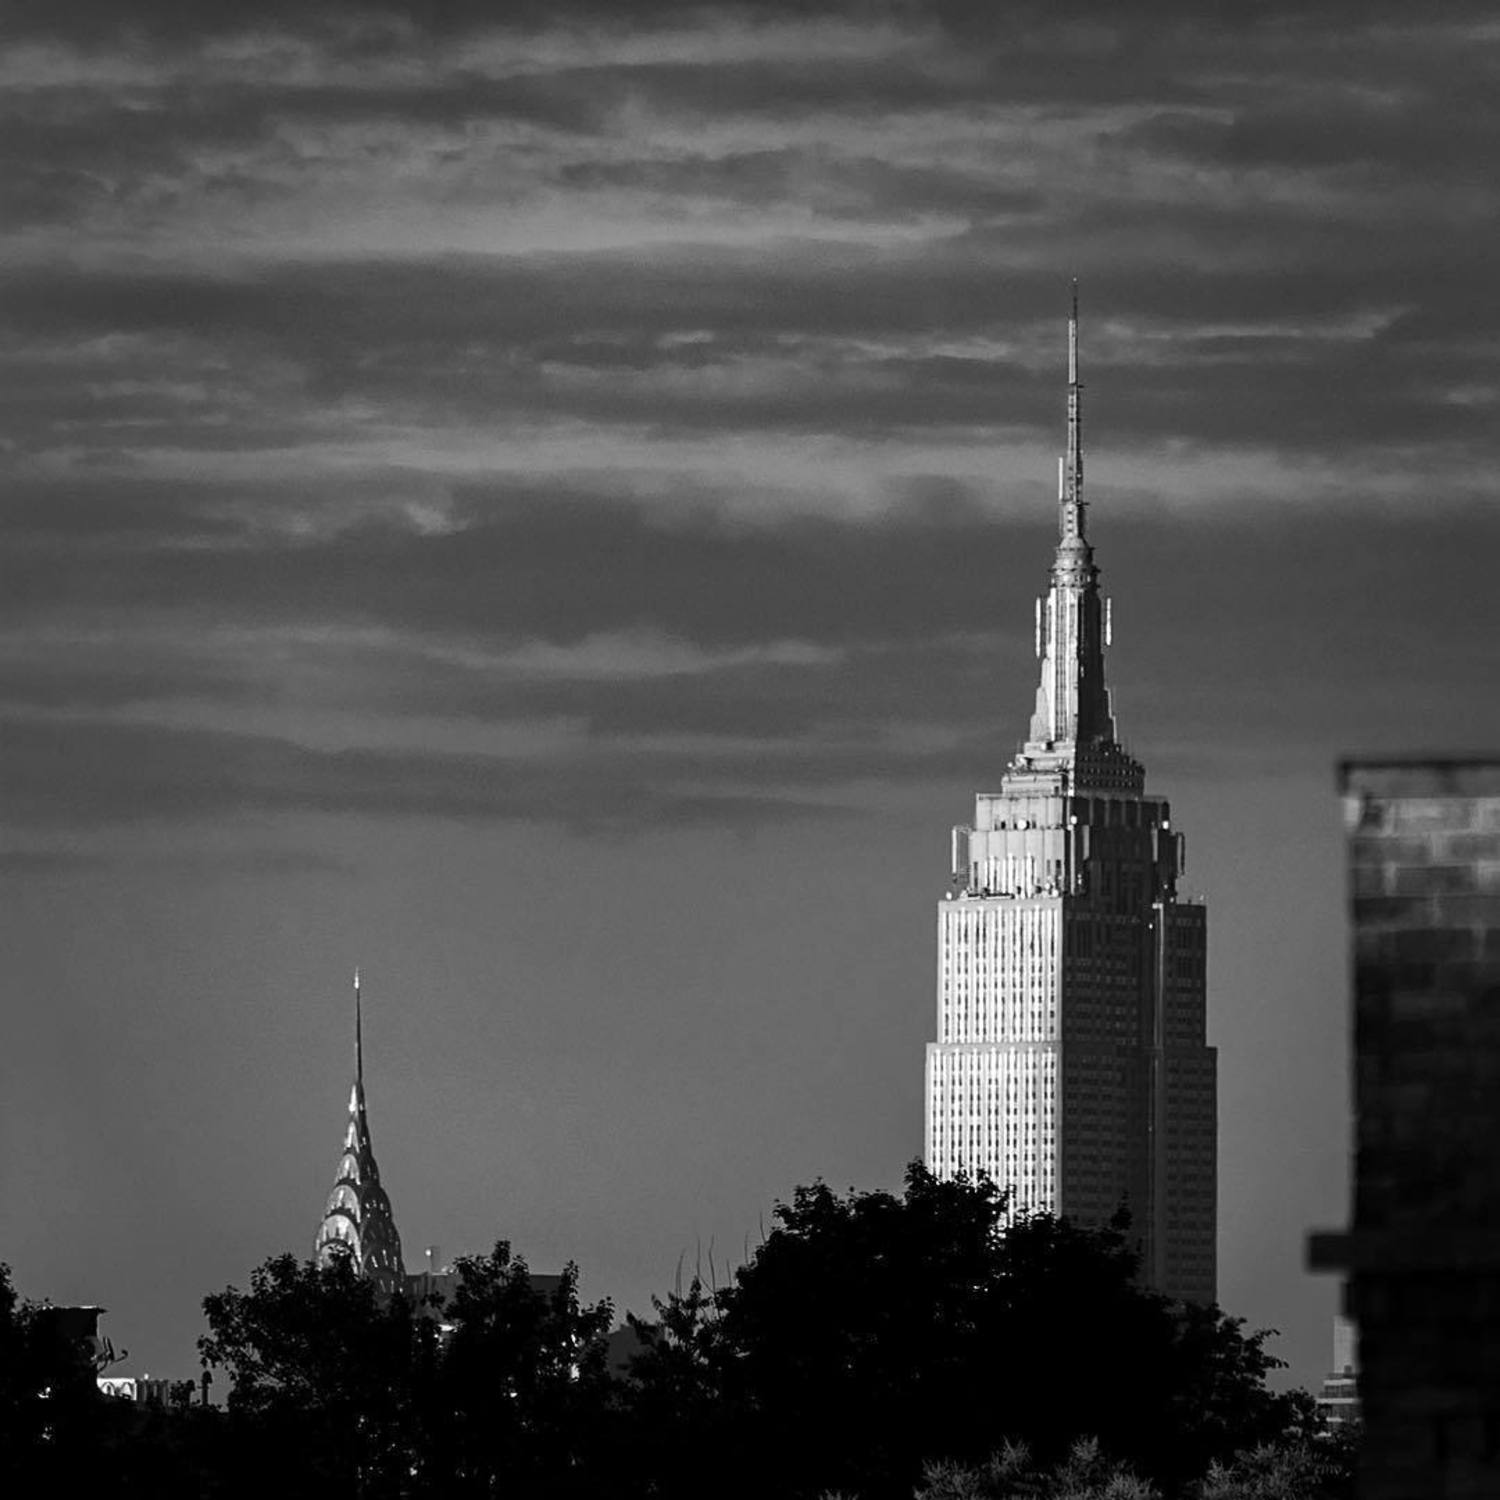 Chrysler and Empire State Buildings, New York, New York